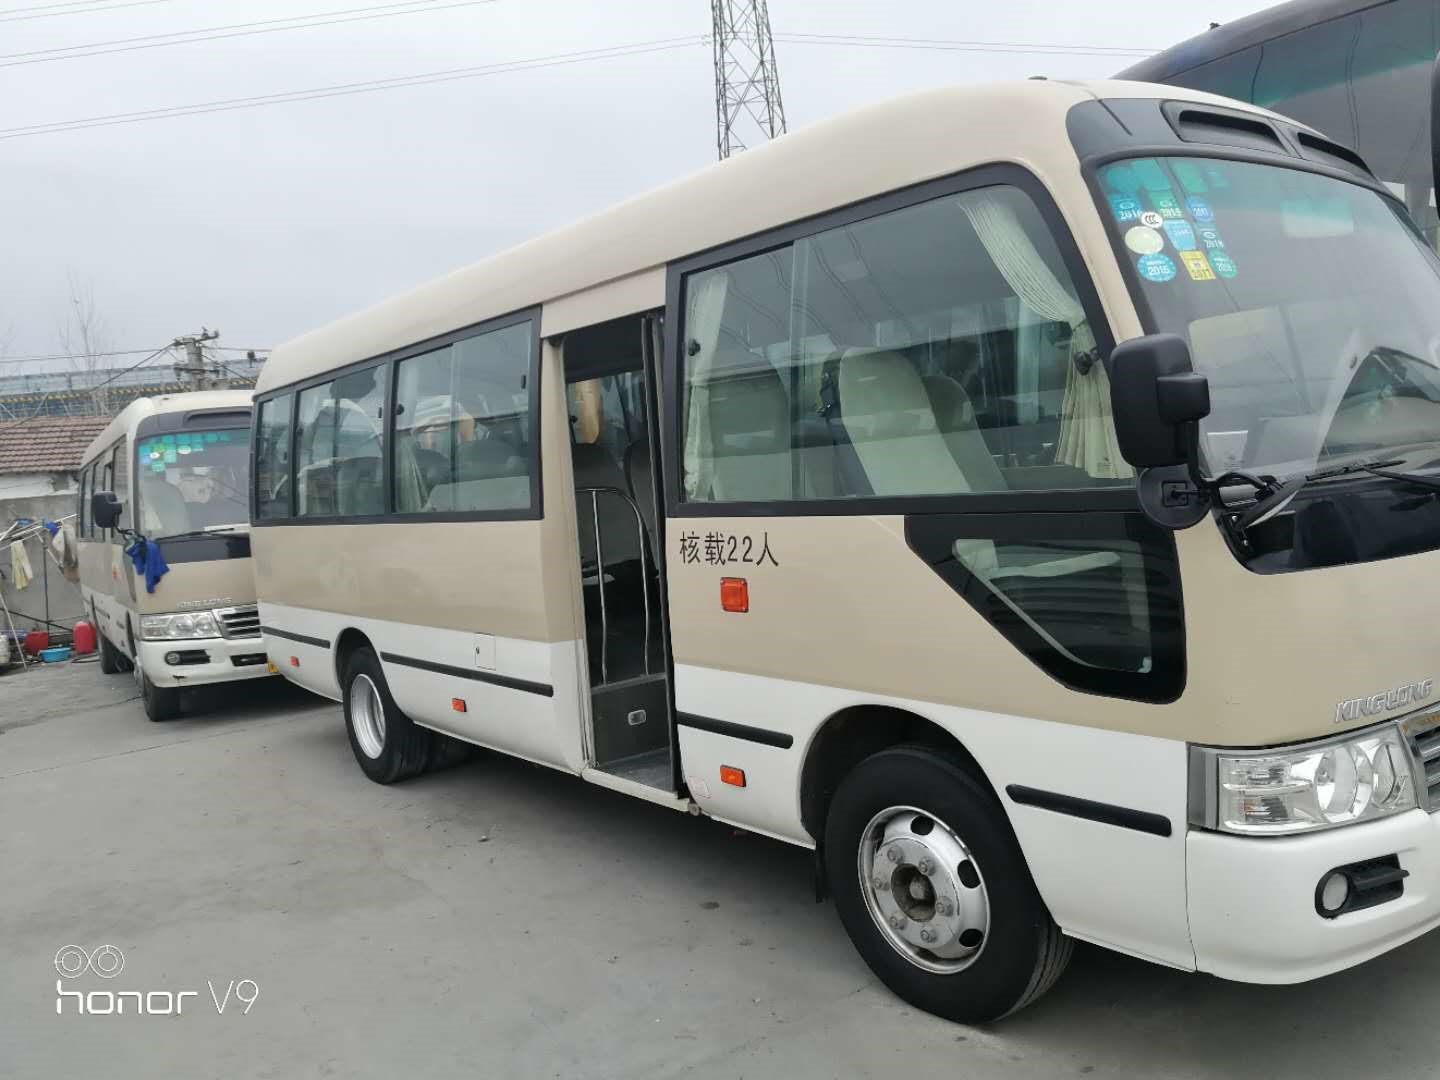 22 Seats Second Hand Toyota Coaster Bus , 2013 Year Toyota Coaster Used